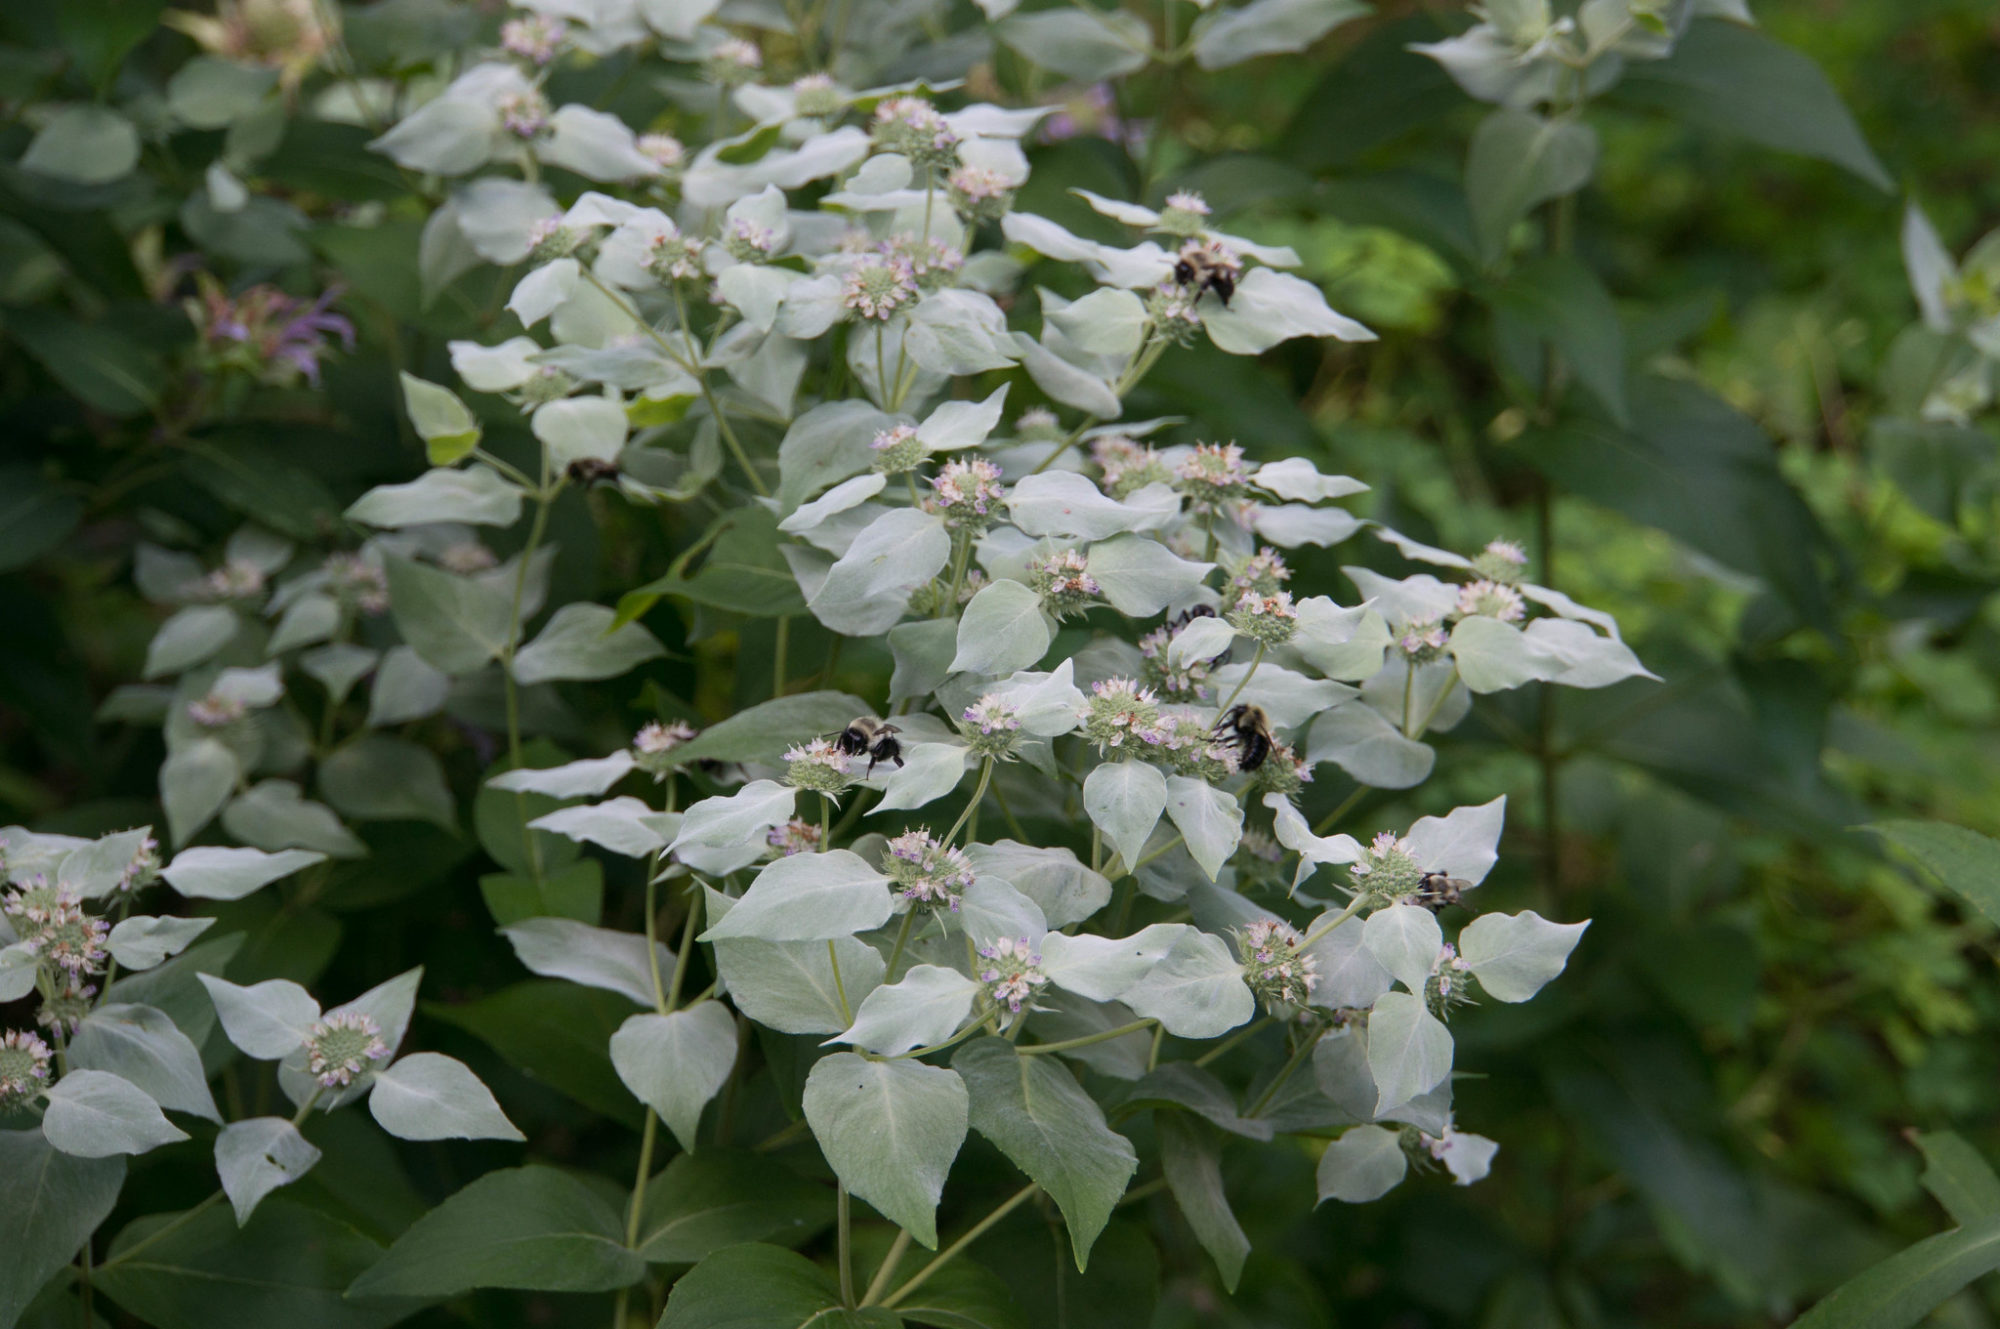 Short-toothed mountain mint (Pycnanthemum muticum) attracts a flurry of native pollinators